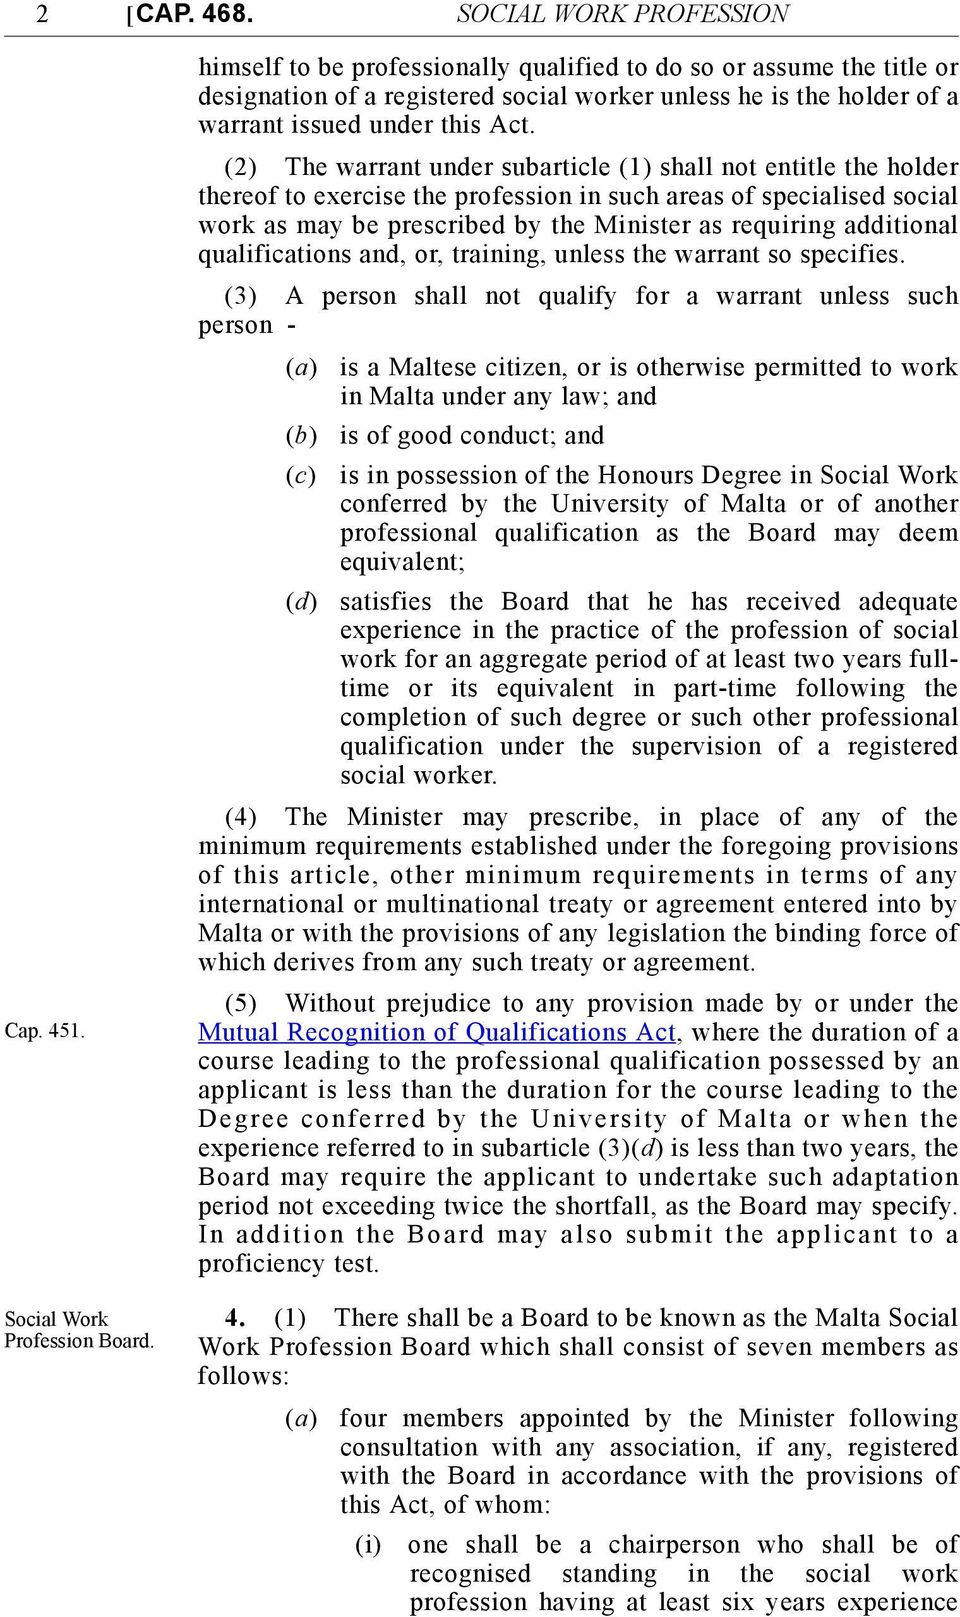 (2) The warrant under subarticle (1) shall not entitle the holder thereof to exercise the profession in such areas of specialised social work as may be prescribed by the Minister as requiring